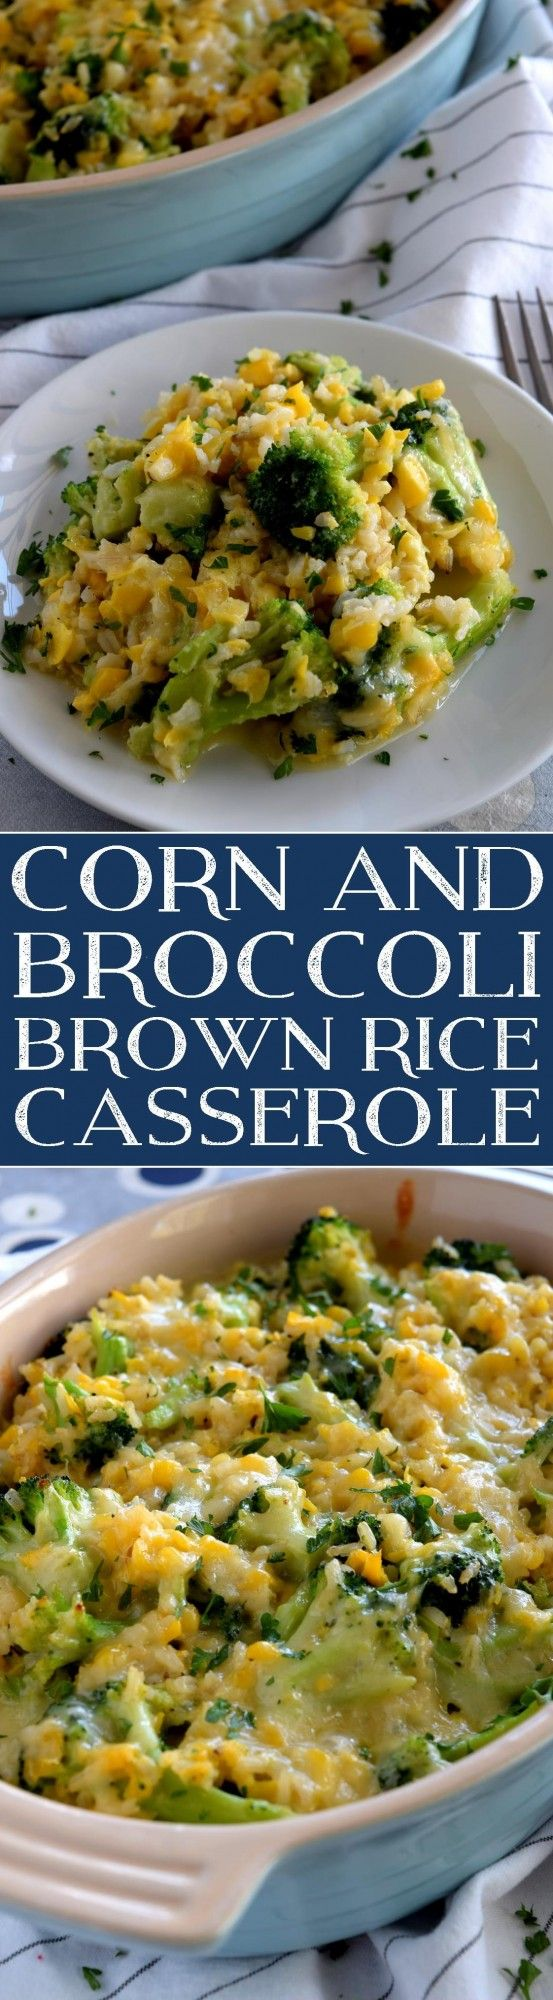 A creamy, sweet, vegetable-filled casserole with the wholesome goodness of brown rice, broccoli, and corn – perfect as a main dish or a side. Easy to prepare in very little time, but with impressive results! If you've been reading my…